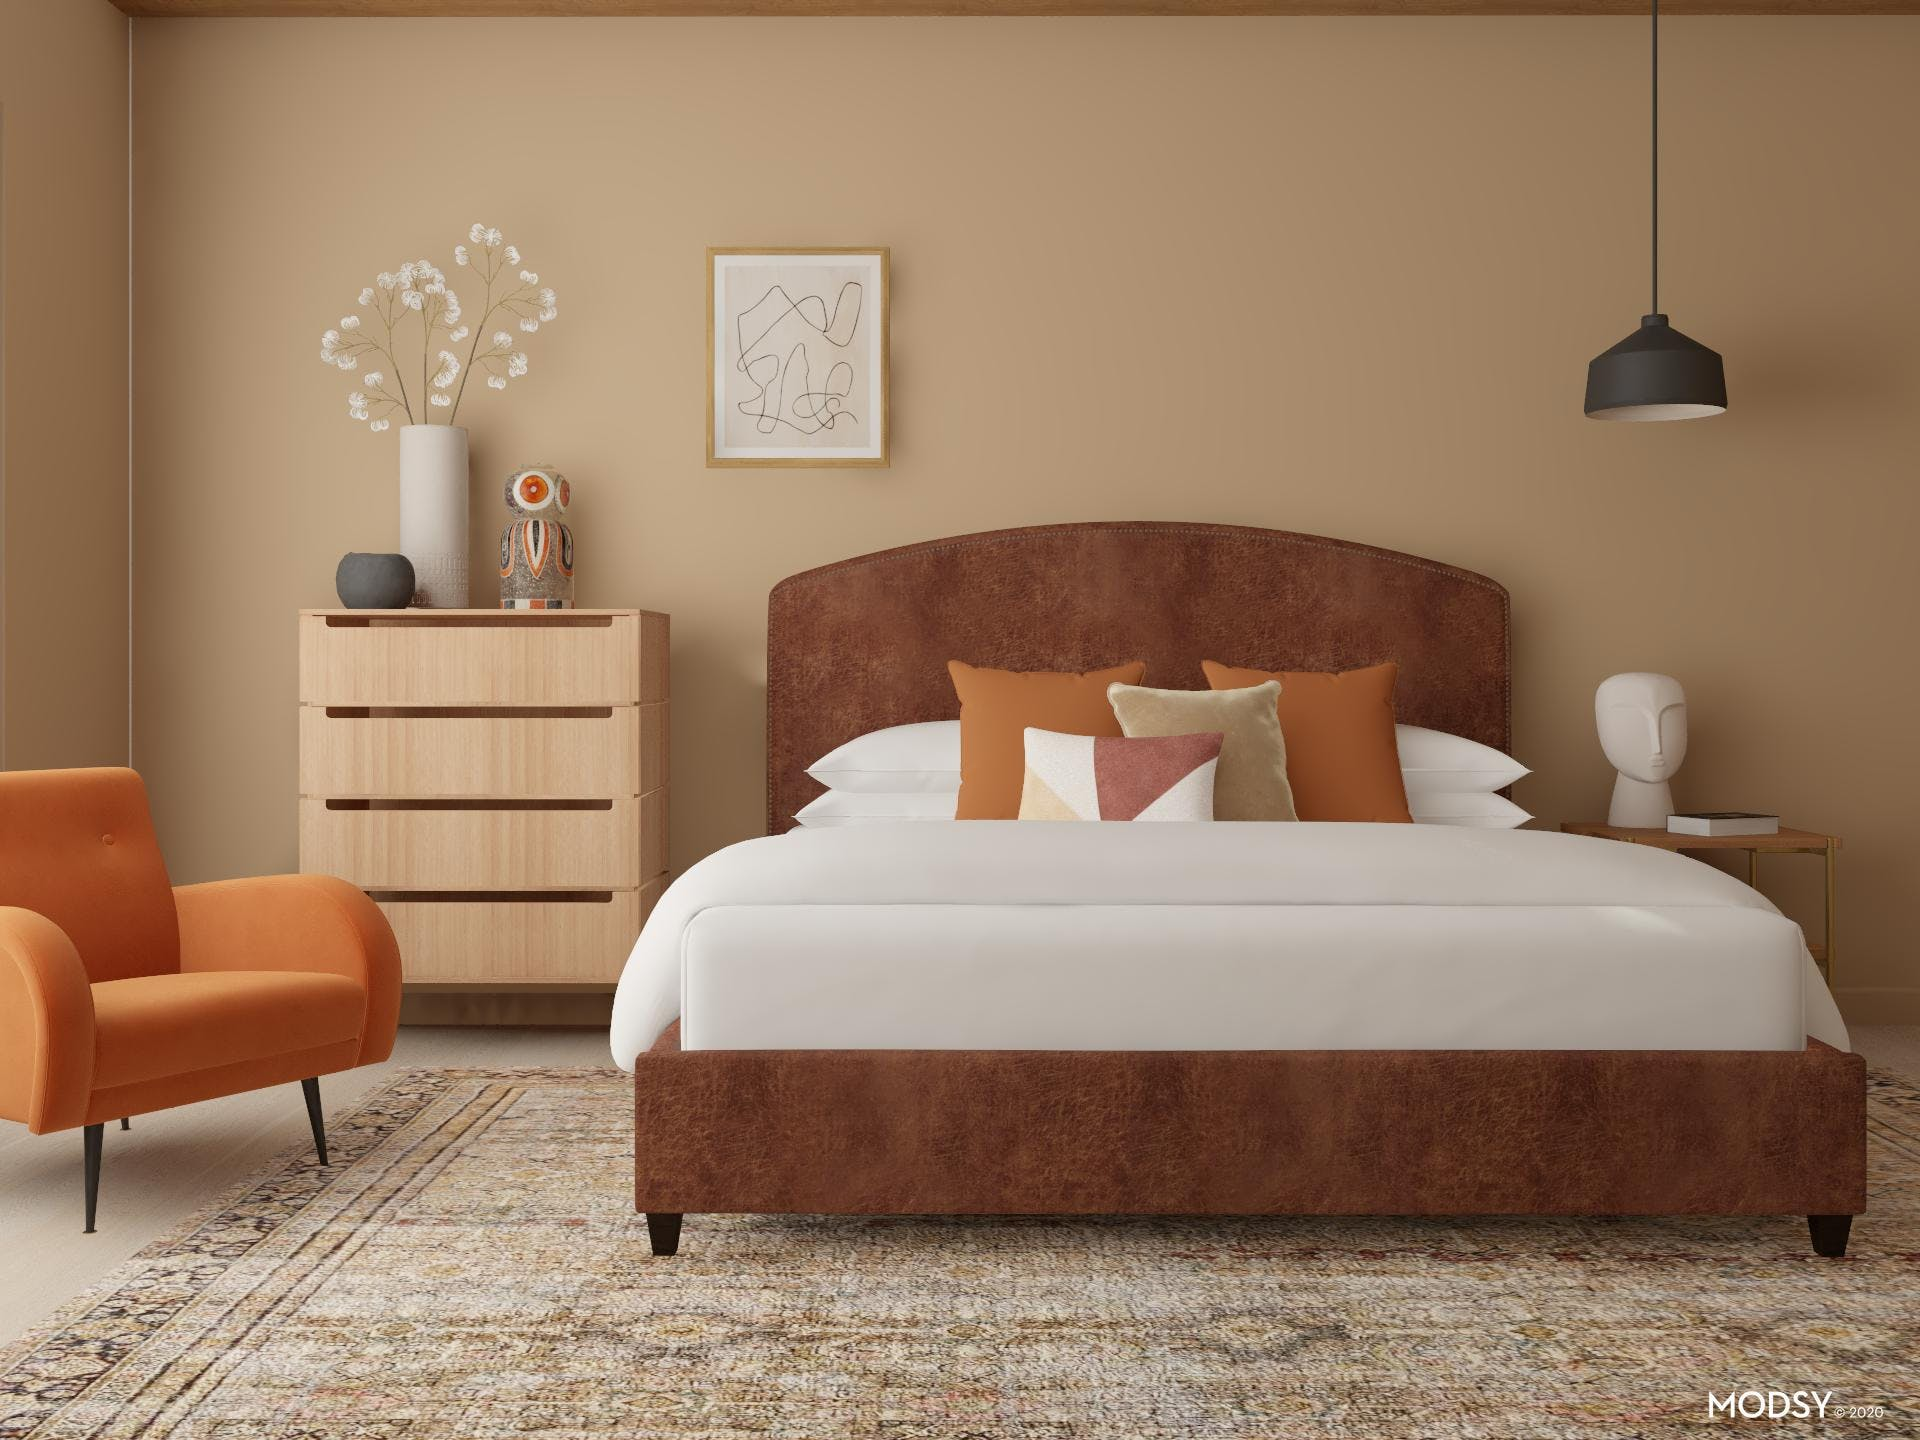 Organic Modern Bedroom with Leather Upholstered Bed